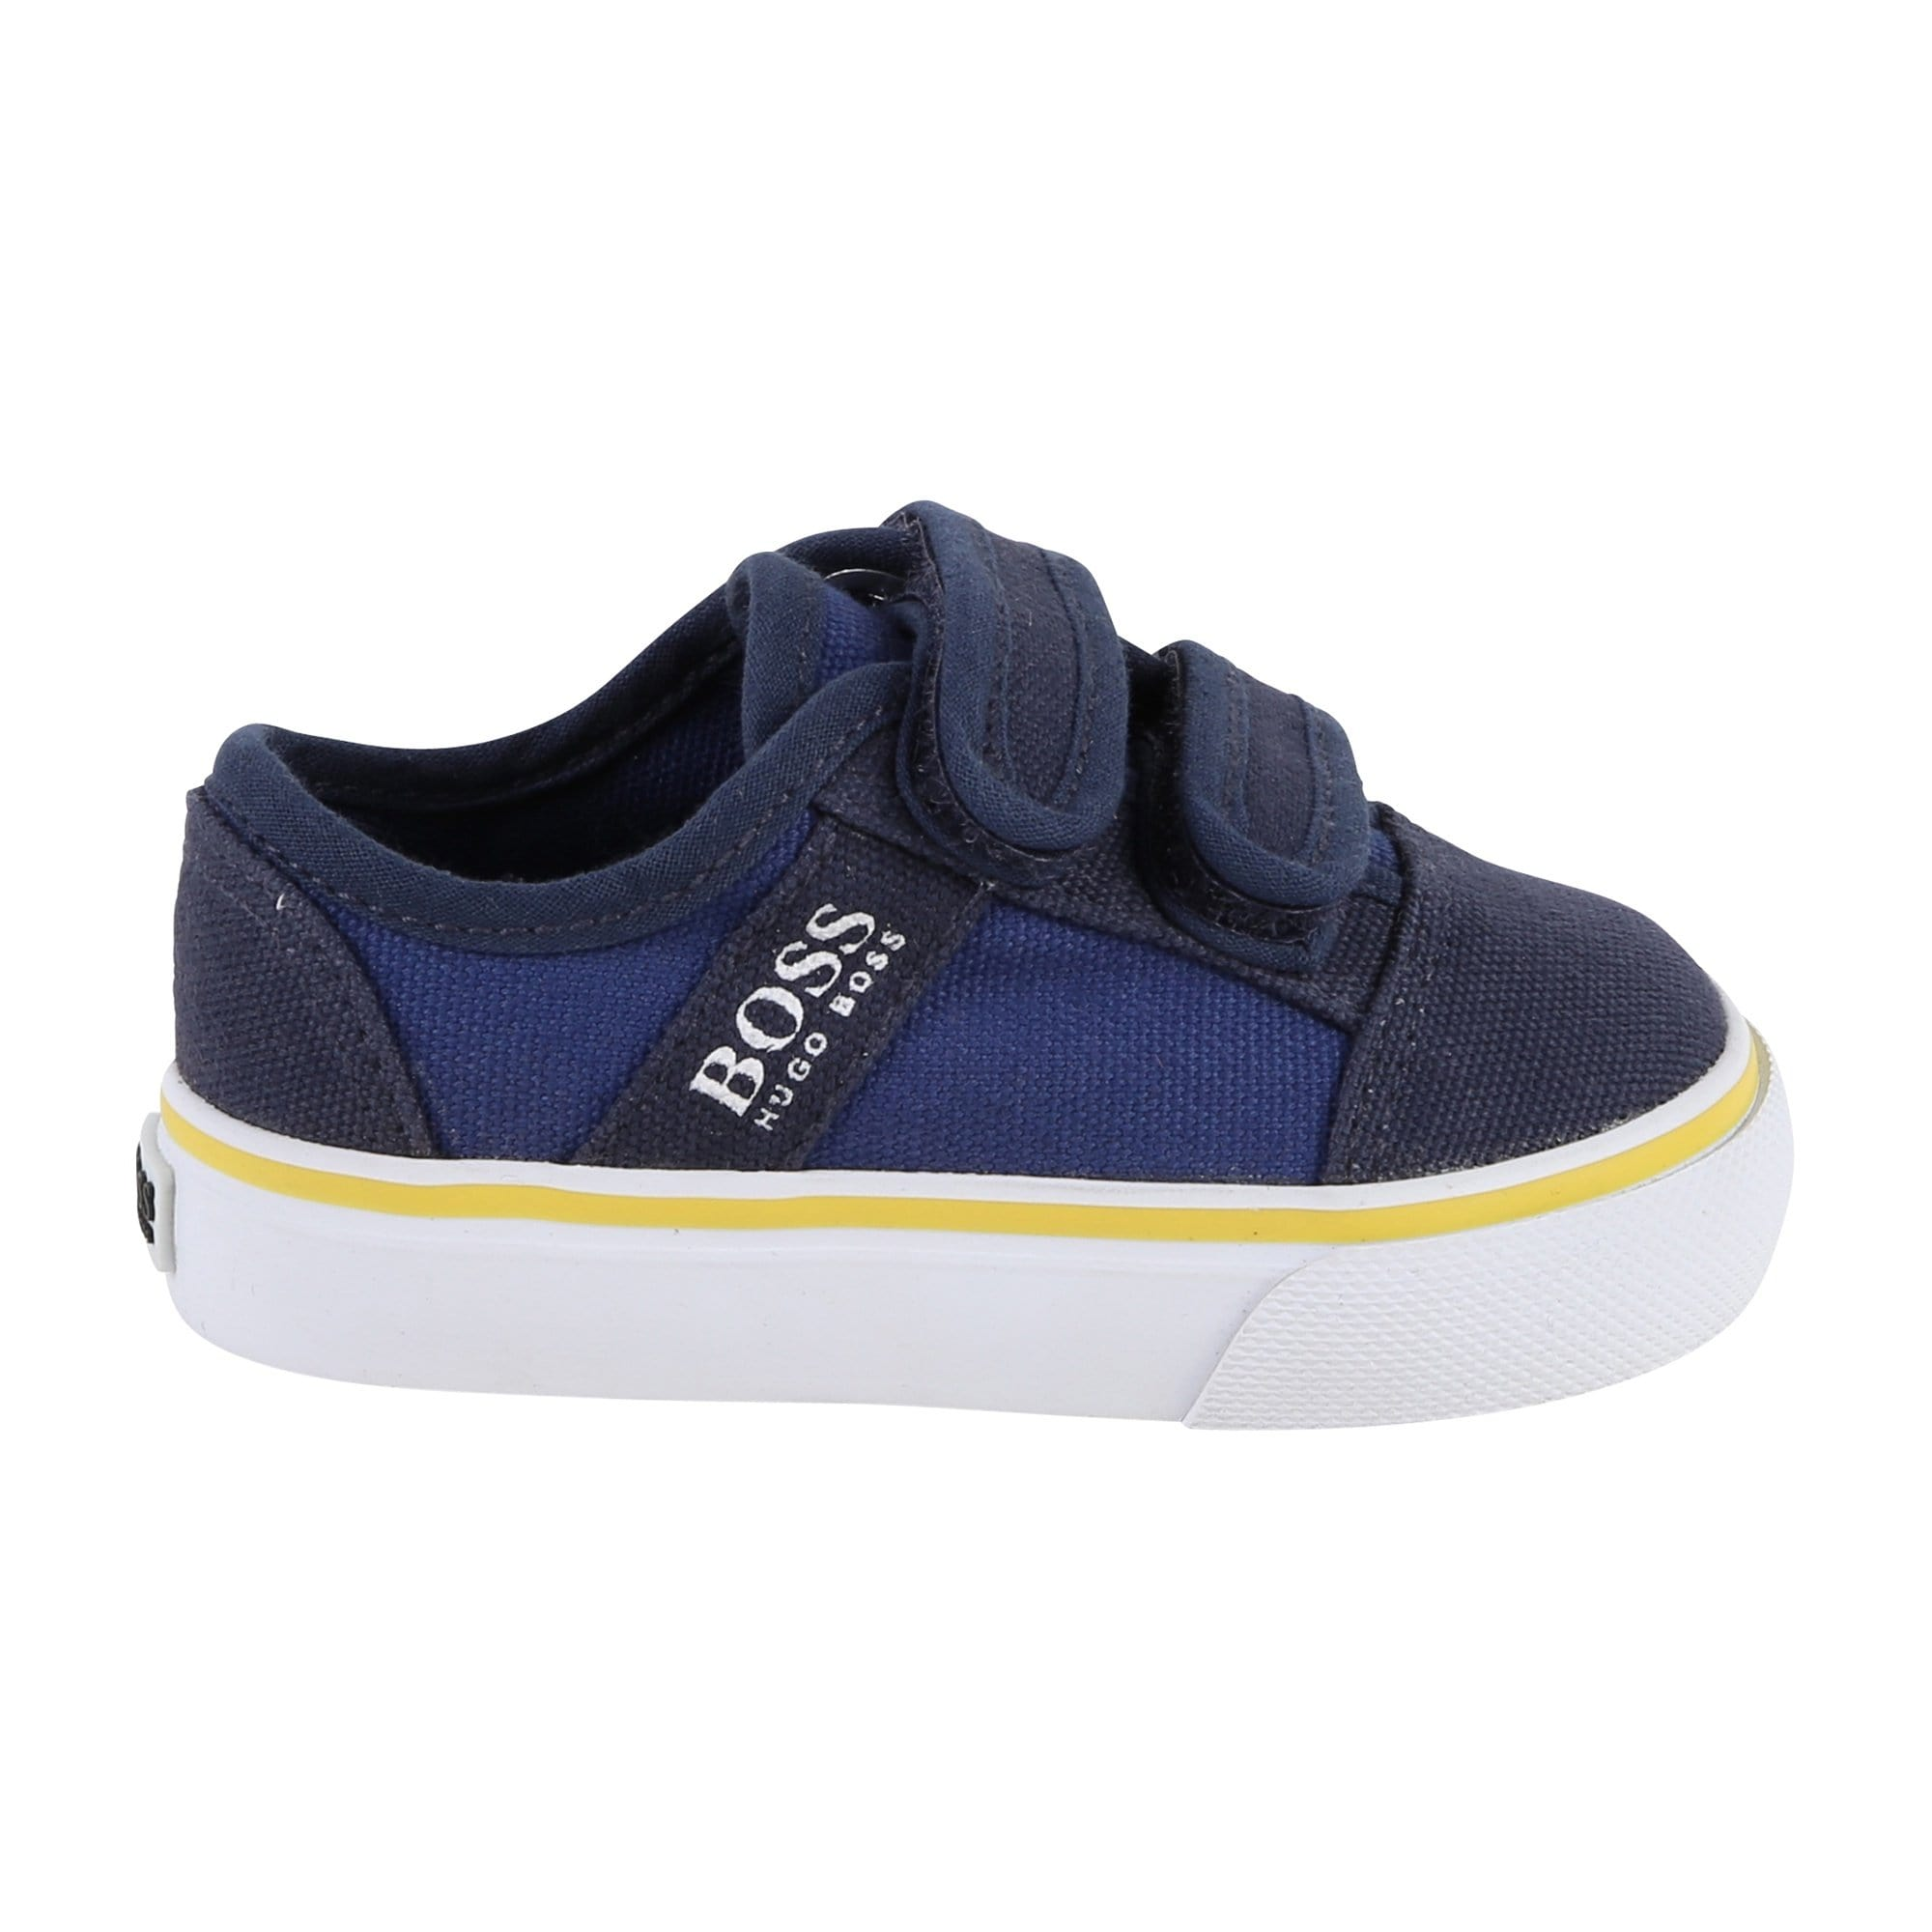 Hugo Boss Velco Trainers Younger Boys